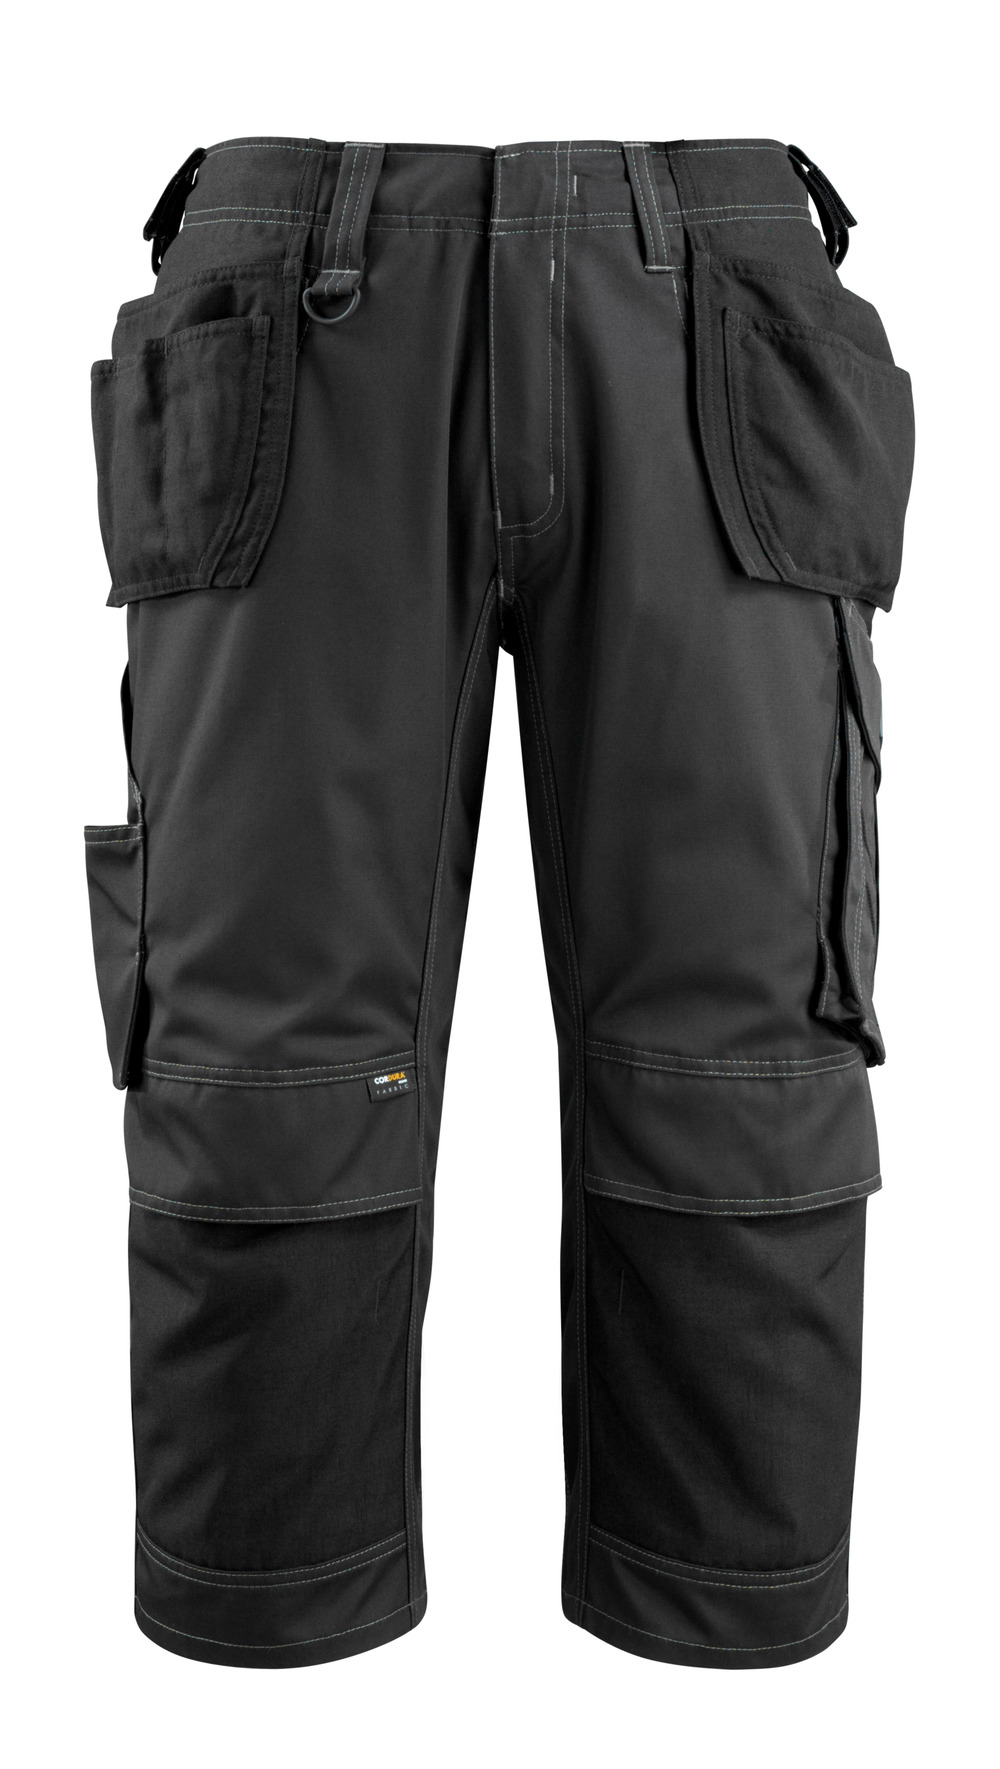 14449-442-09 ¾ Length Trousers with kneepad pockets and holster pockets - black